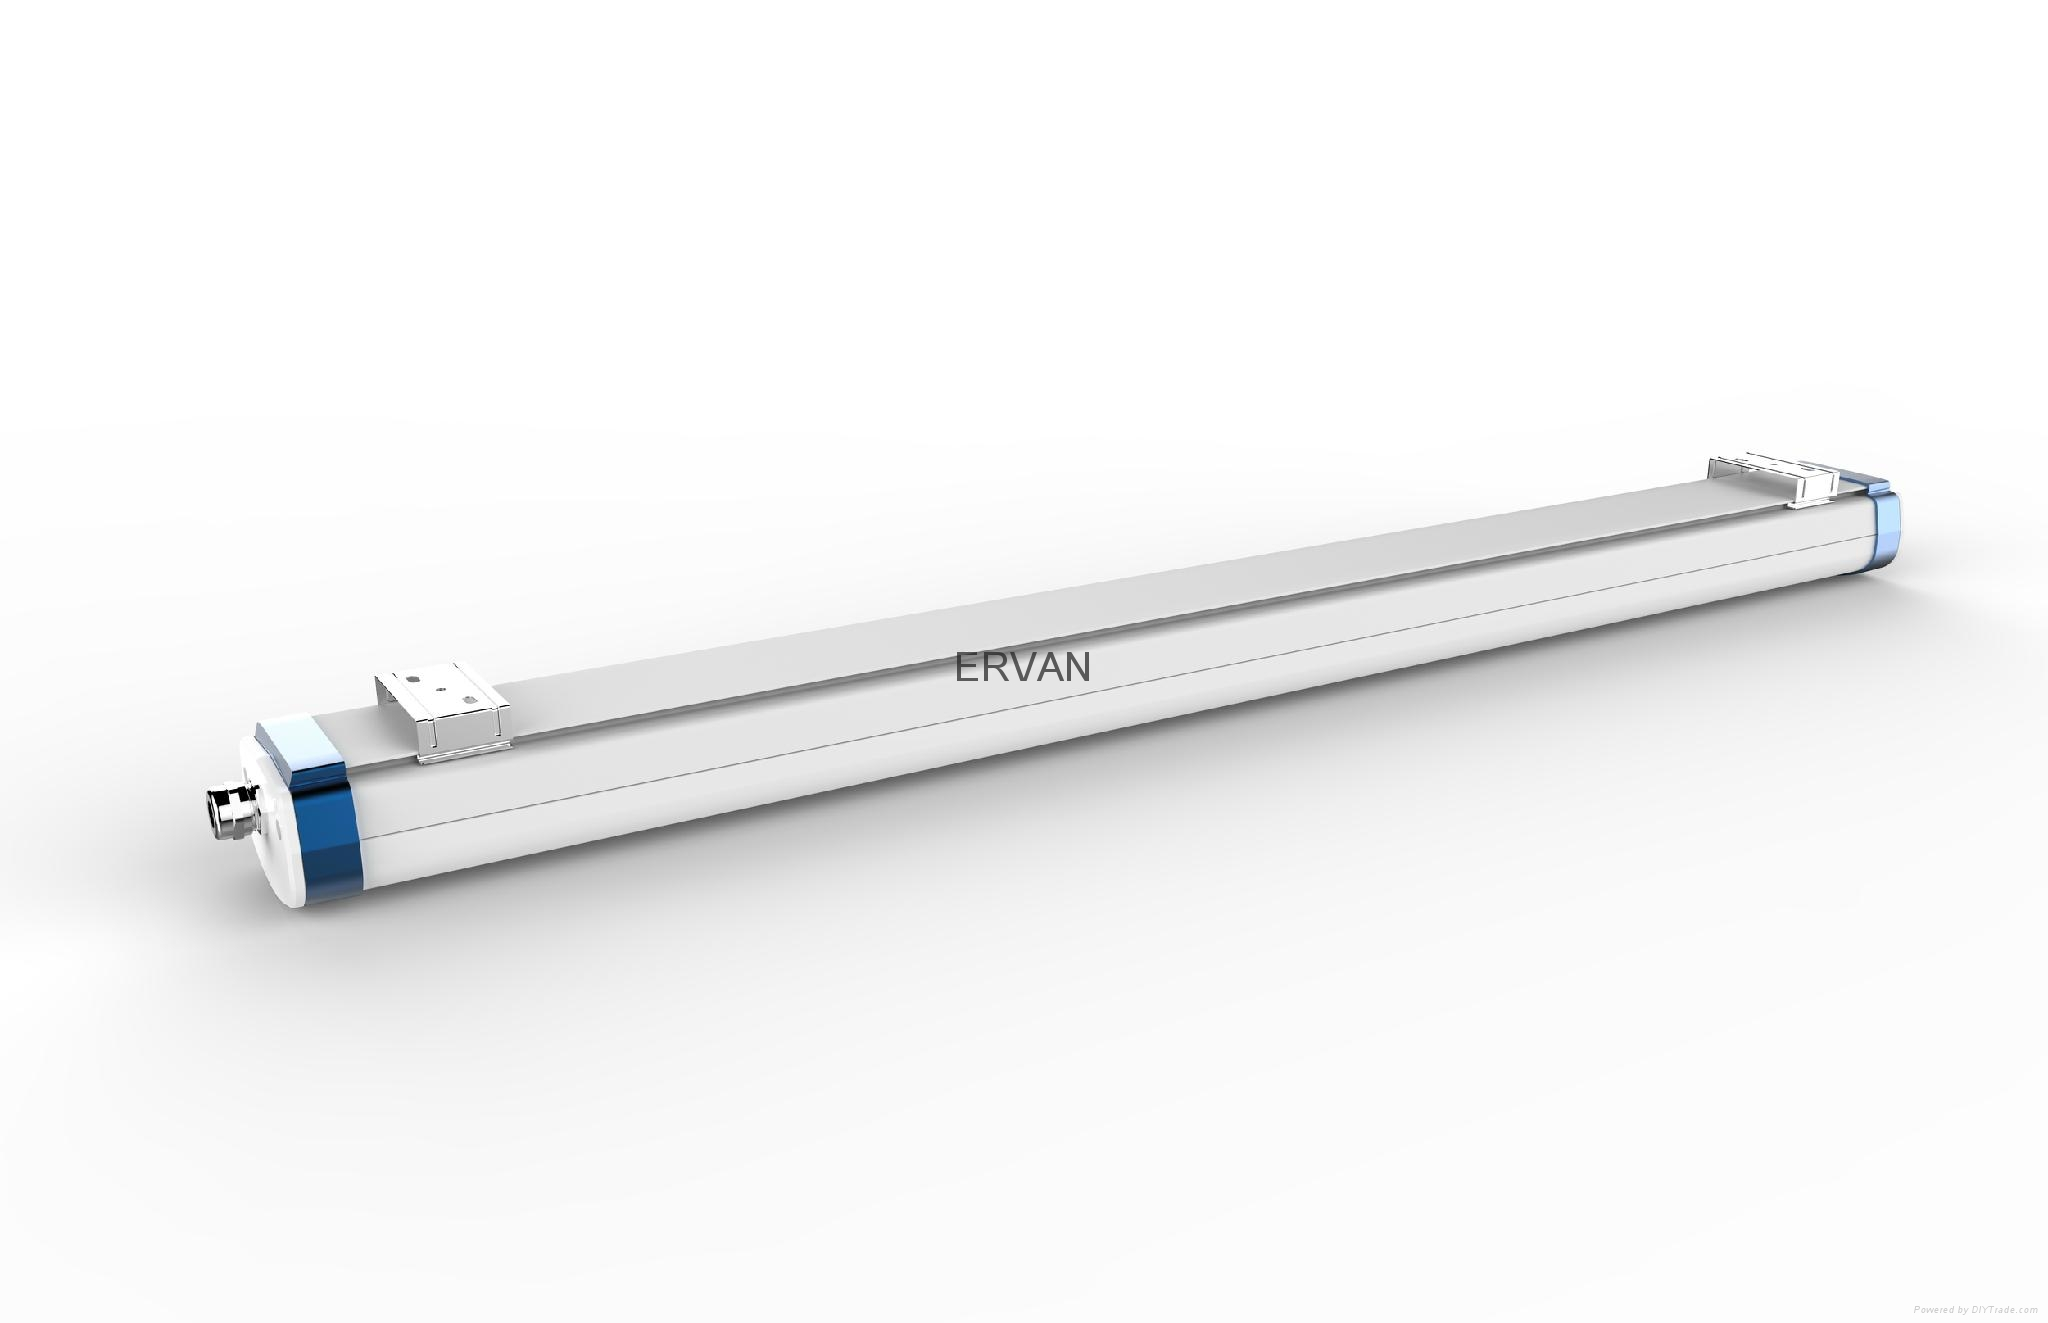 TUV approved ERVAN T07 retrofit LED batten fitting 6